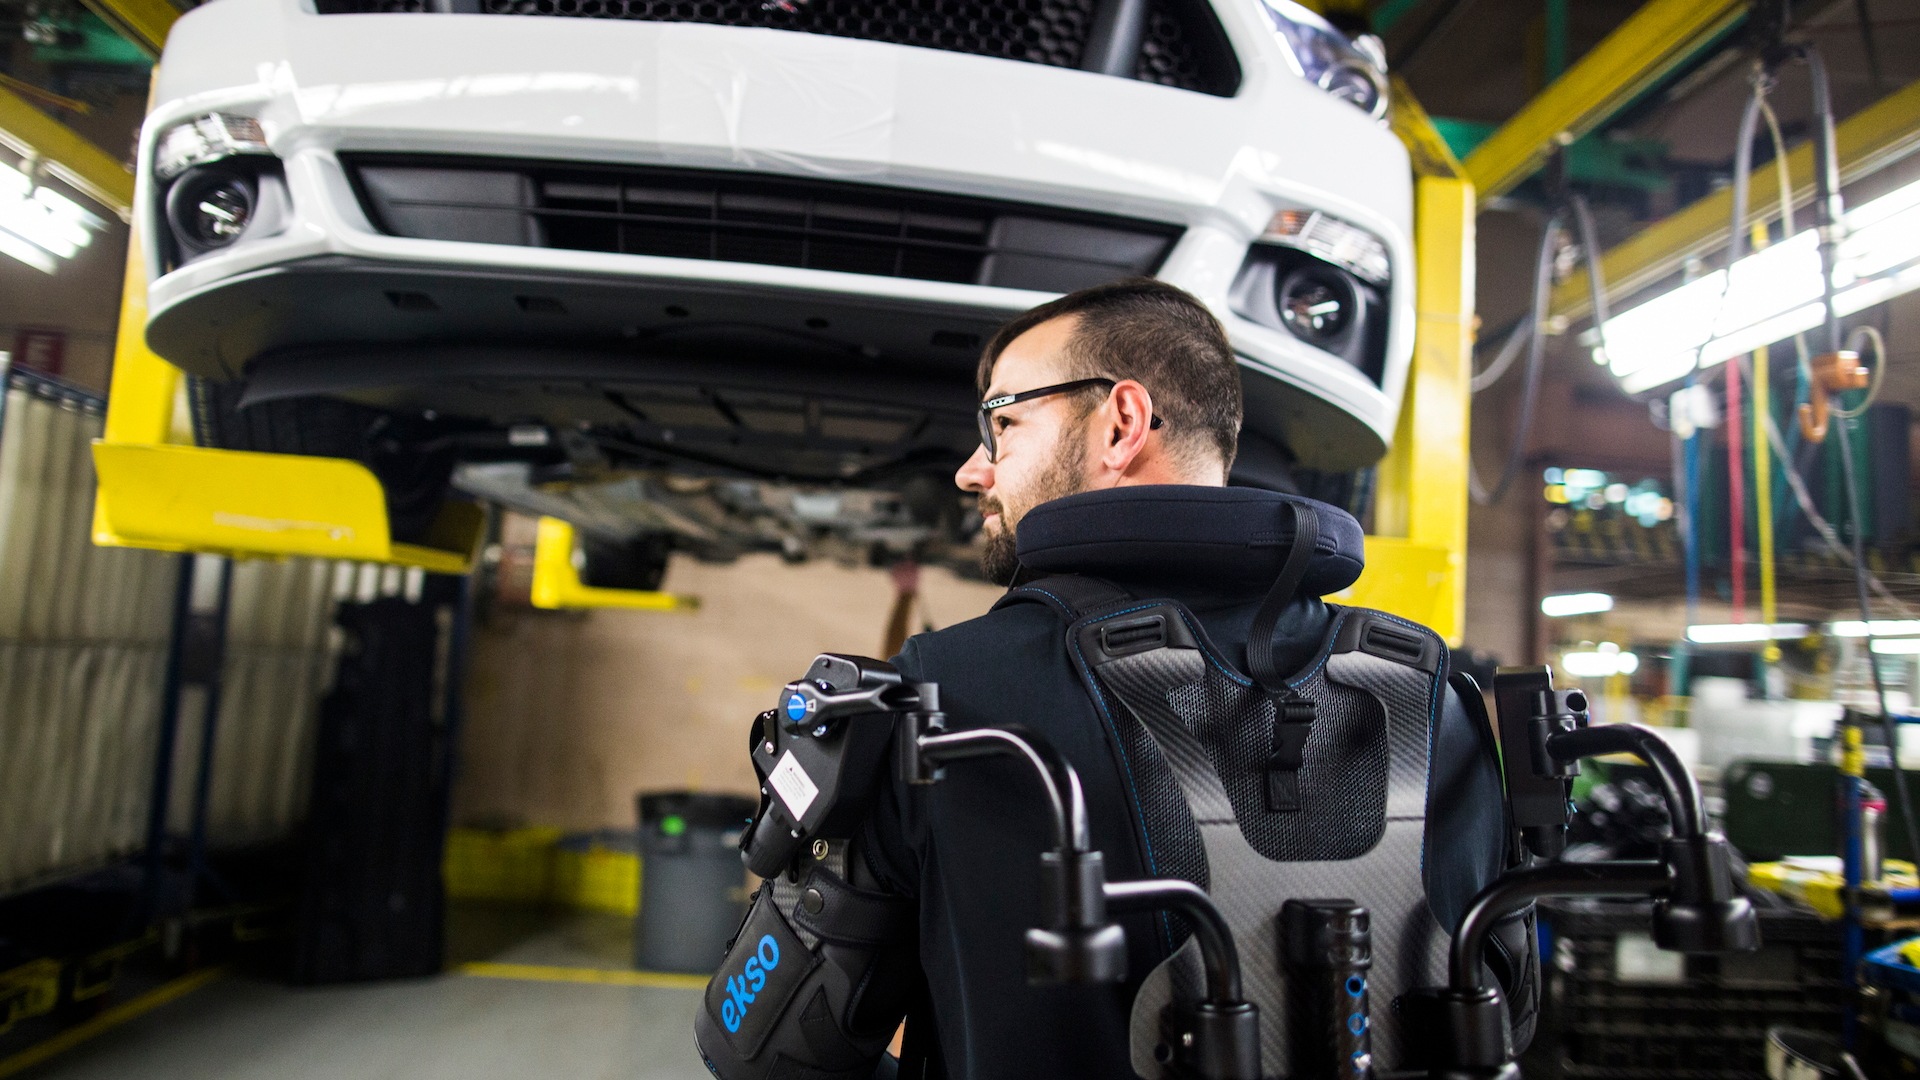 Ford EksoVest to reduce worker fatigue and lessen injury